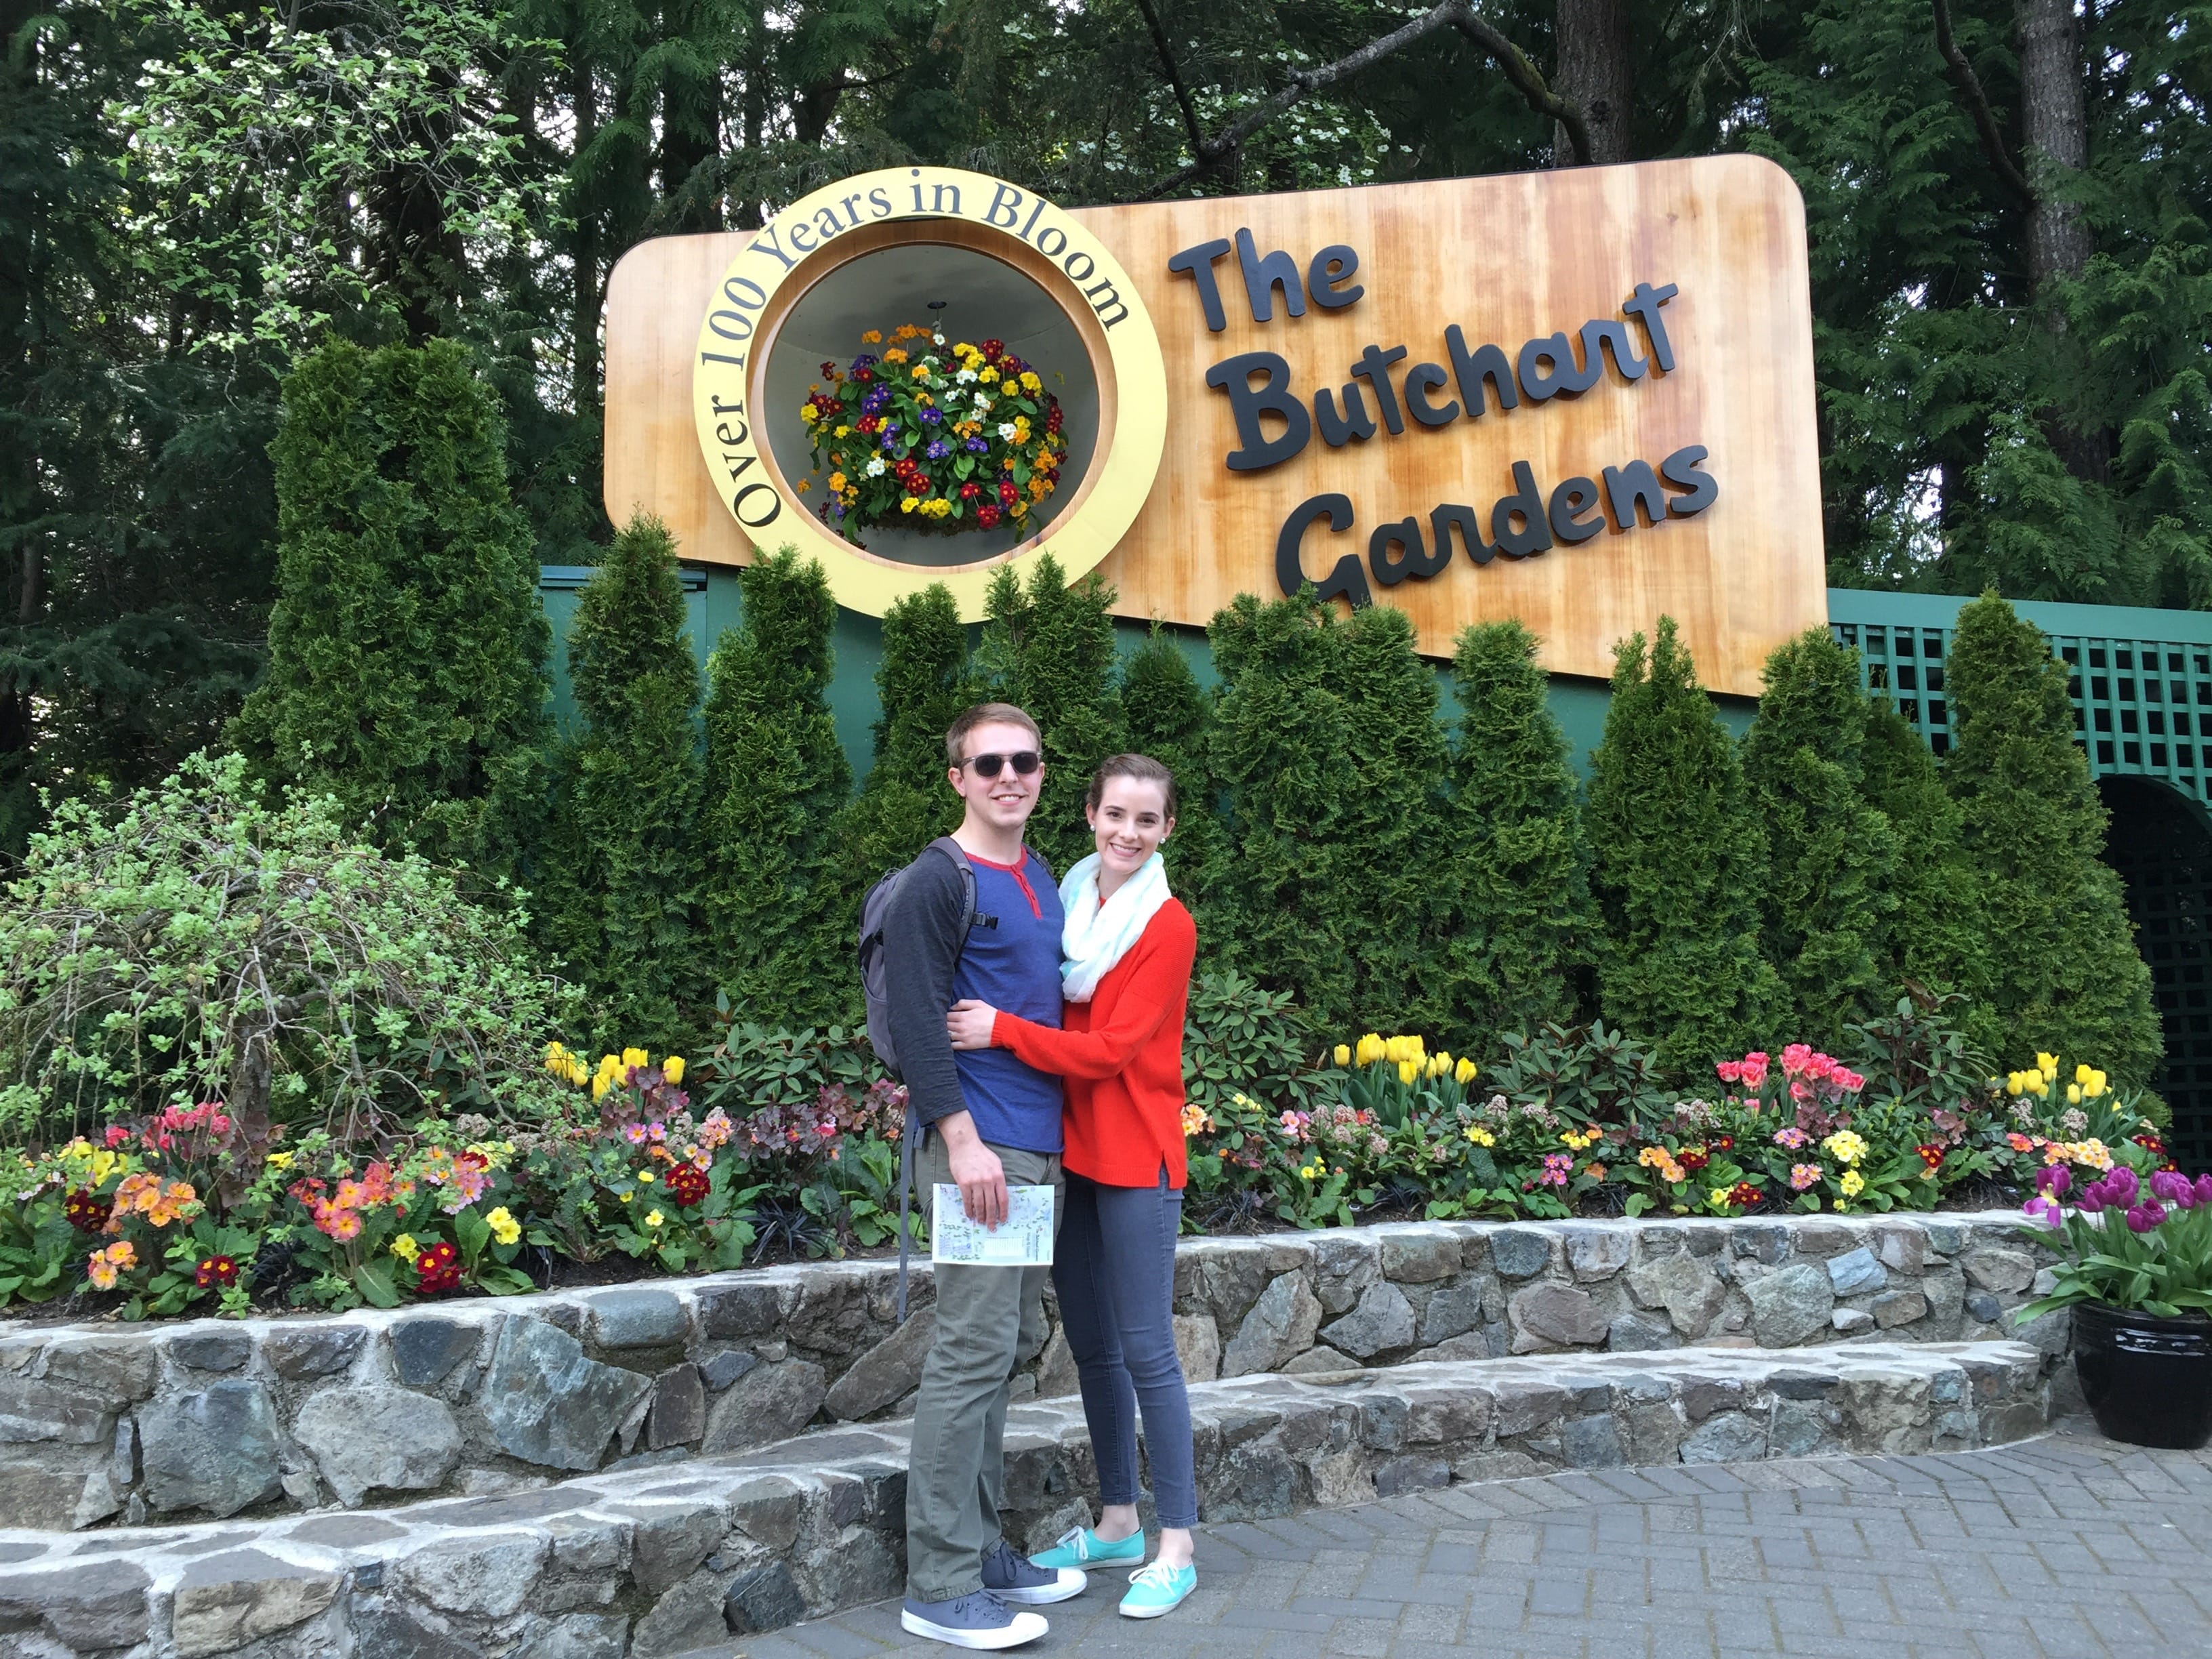 Once we were done in downtown Victoria, our driver took us to Butchart Gardens. This place was probably one of the craziest explosions of flowers I've ever seen. It's an old lime-rock pit that they turned into gardens representing countries around the world.